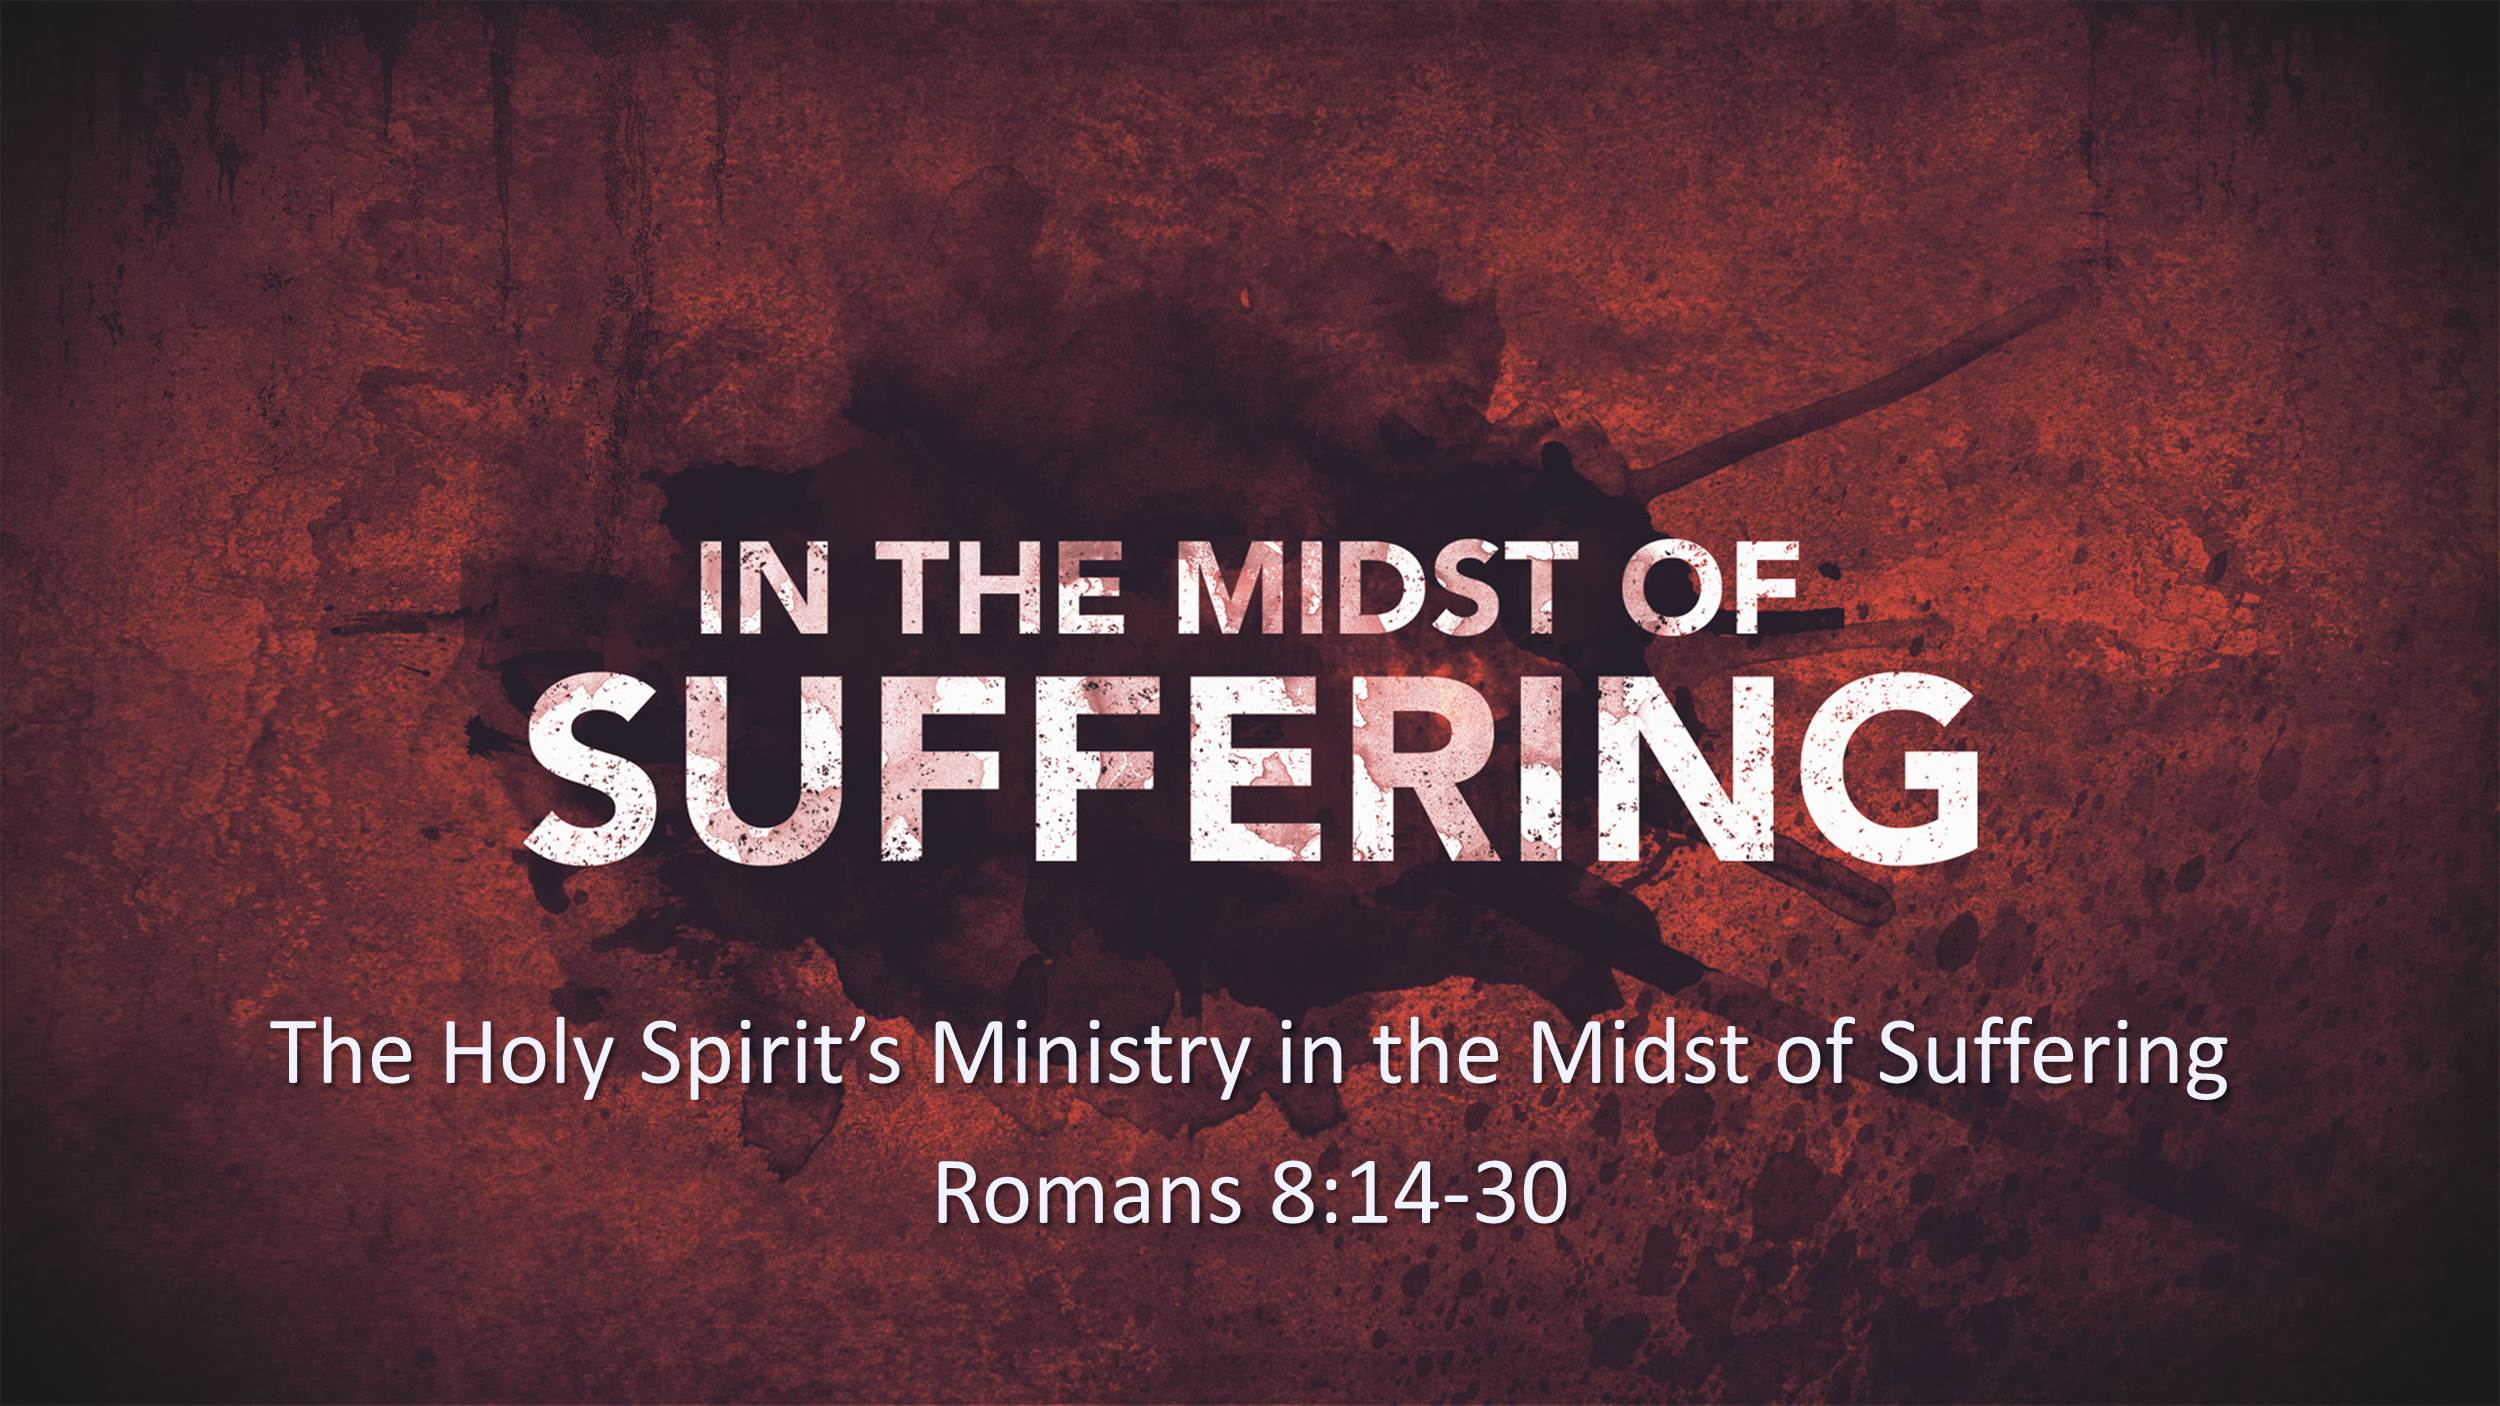 The Holy Spirit's Ministry in the Midst of Suffering